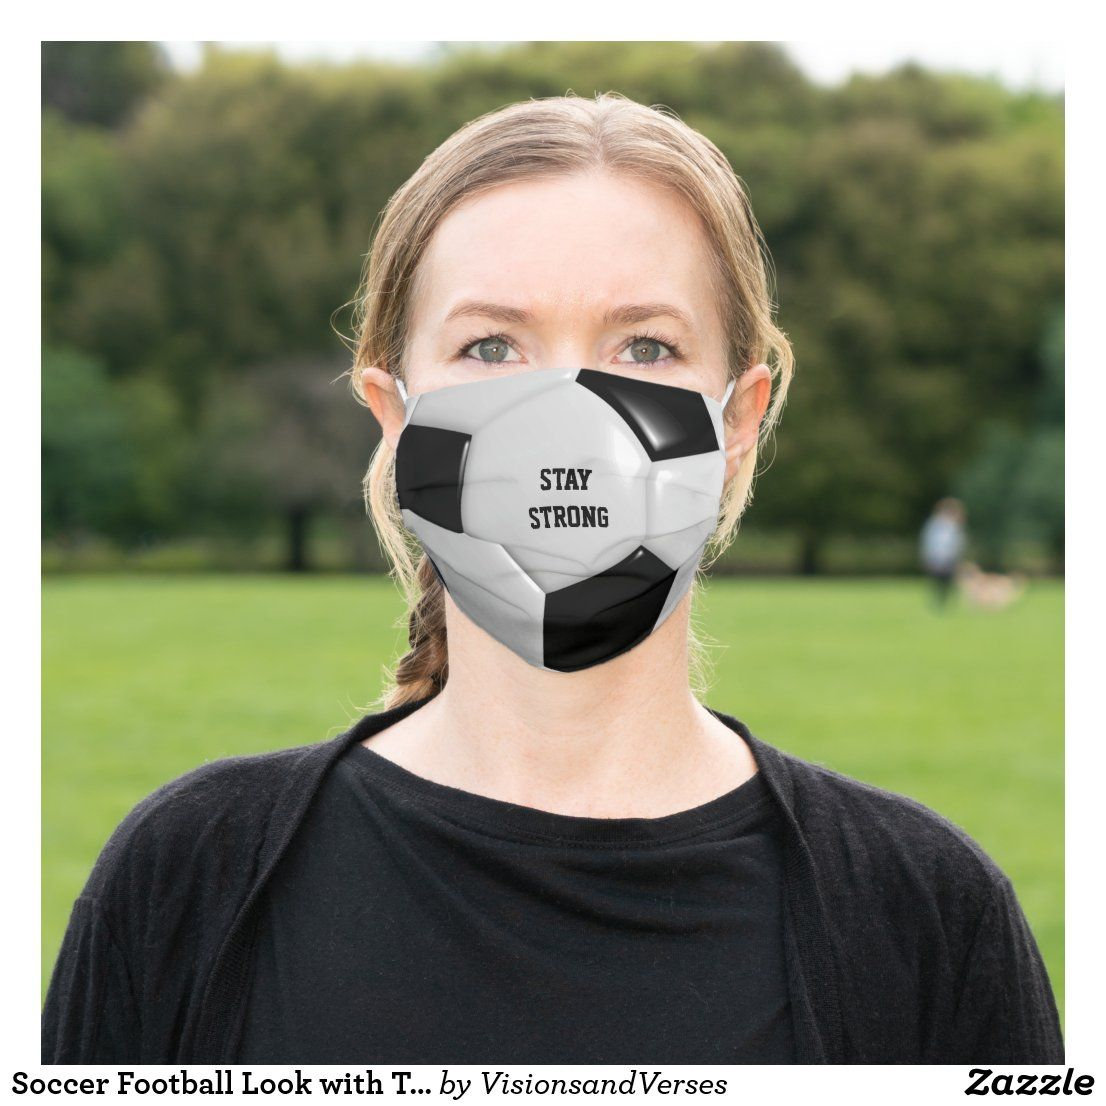 Soccer Football Look With Text Cloth Face Mask Zazzle Com In 2020 Face Mask Soccer Face